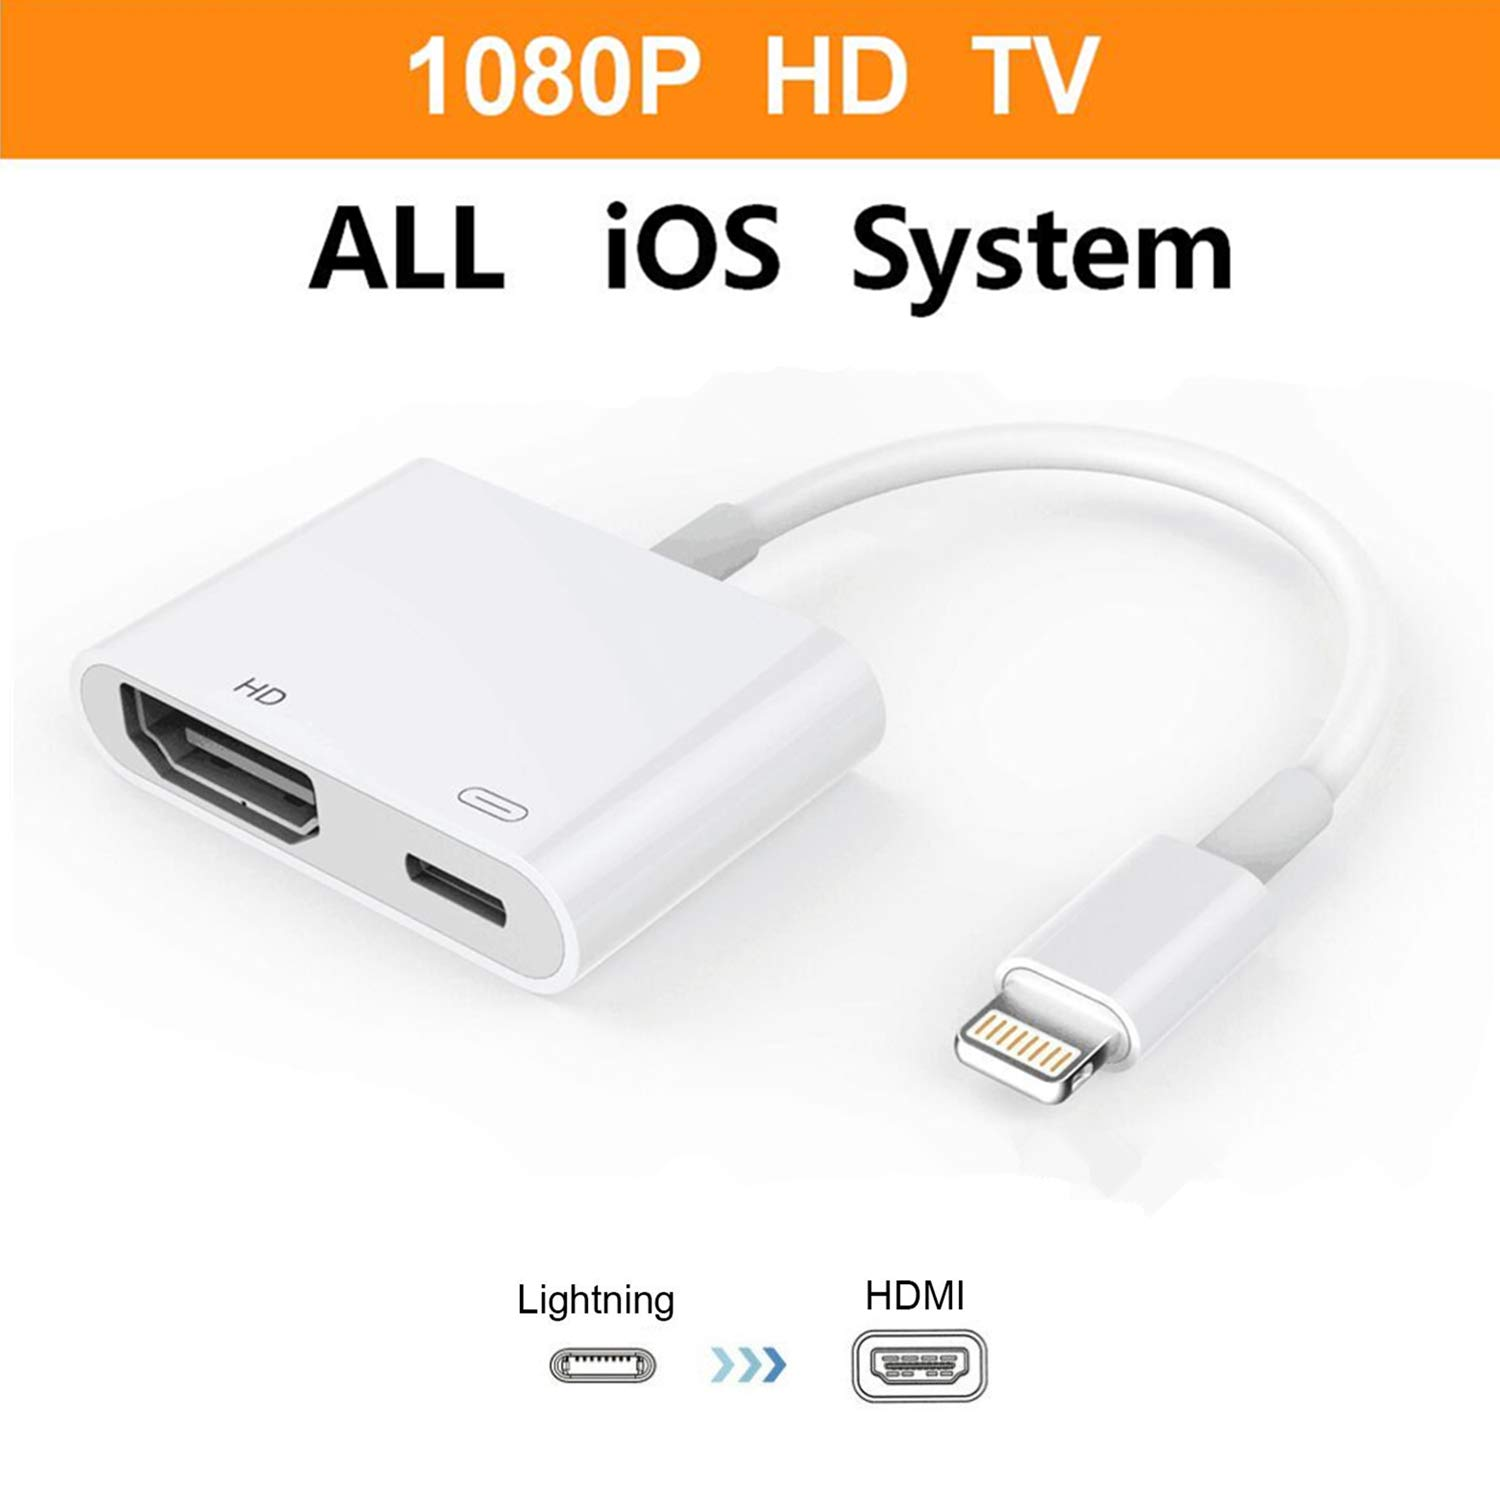 Lightning to HDMI Adapter,ebasy Lightning Digital AV Adapter with Lightning Charging Port for HD TV Monitor Projector 1080P for iPhone, iPad and iPod(Support iOS 10, iOS 11)-White